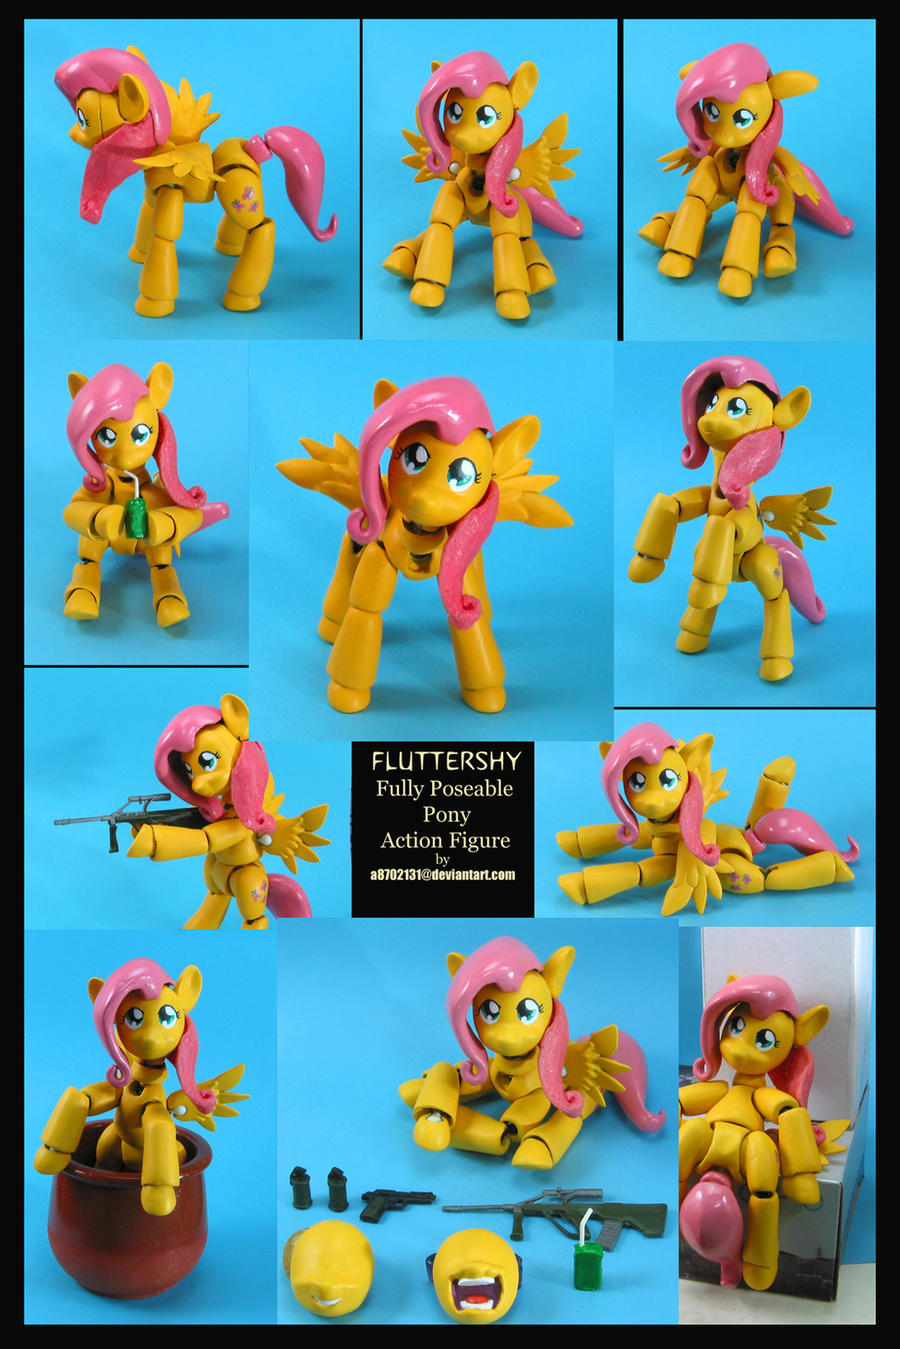 Fluttershy Action Figure by a8702131